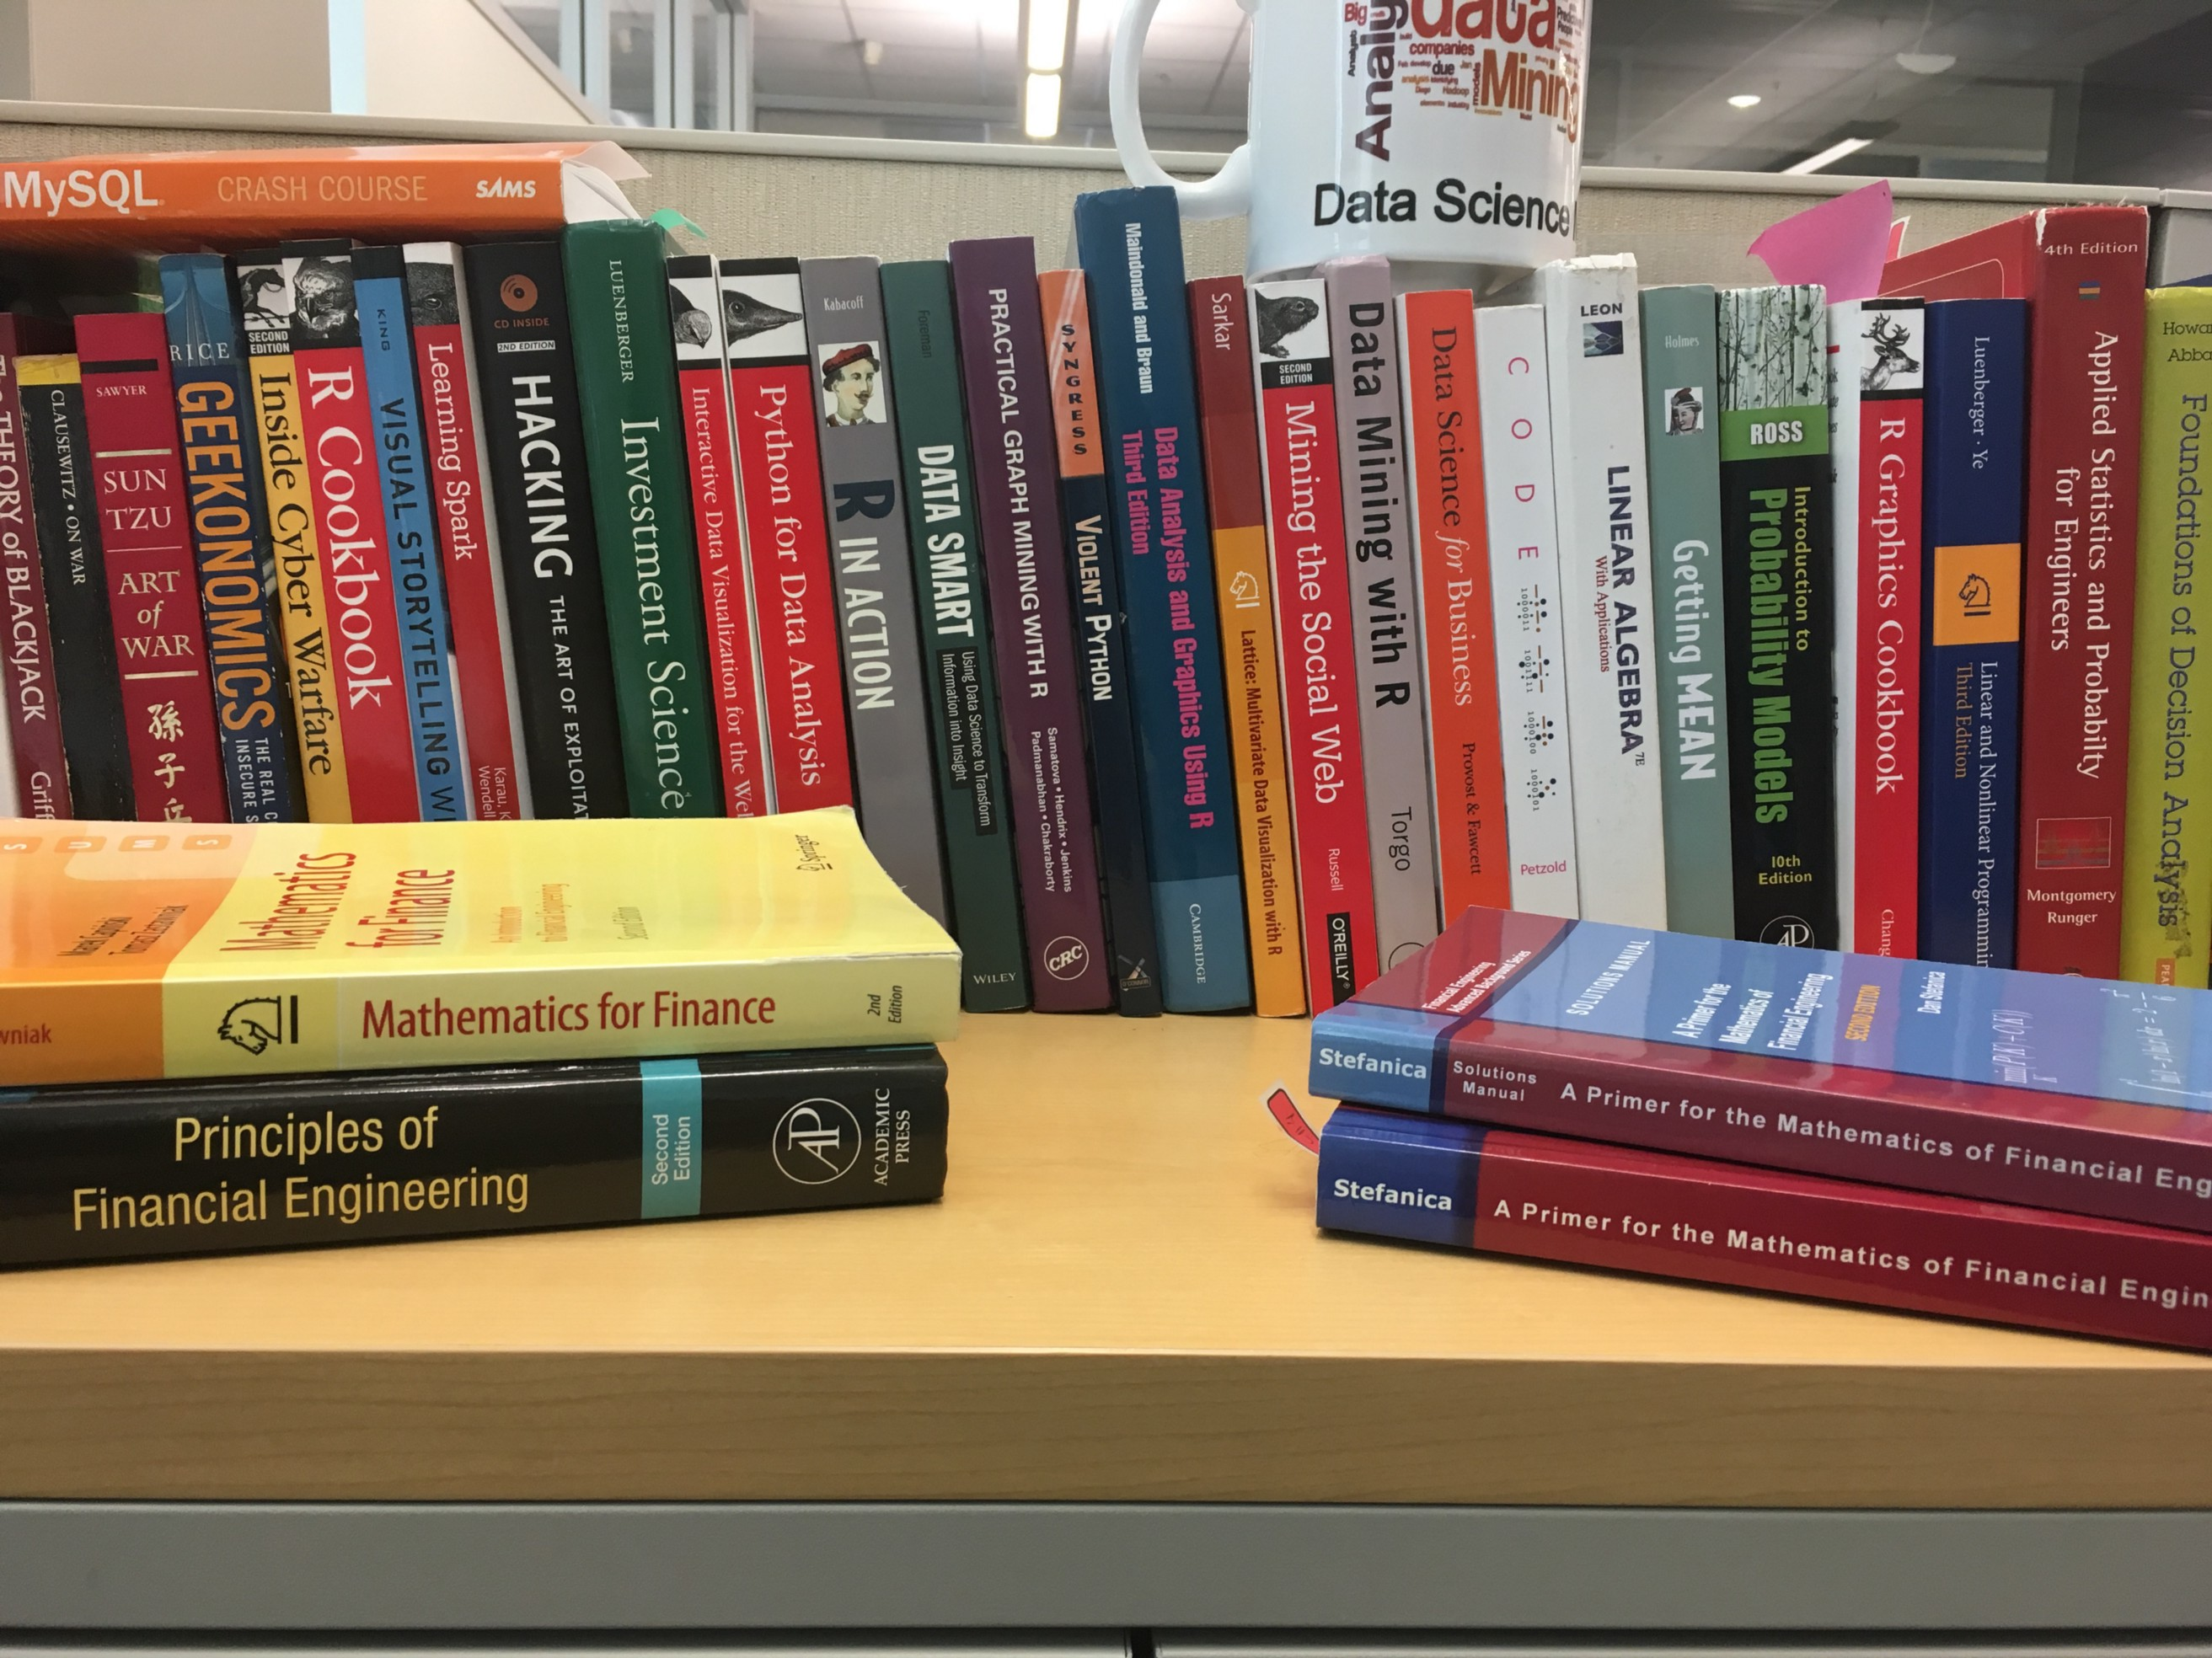 Five books every data scientist should read that are not about data